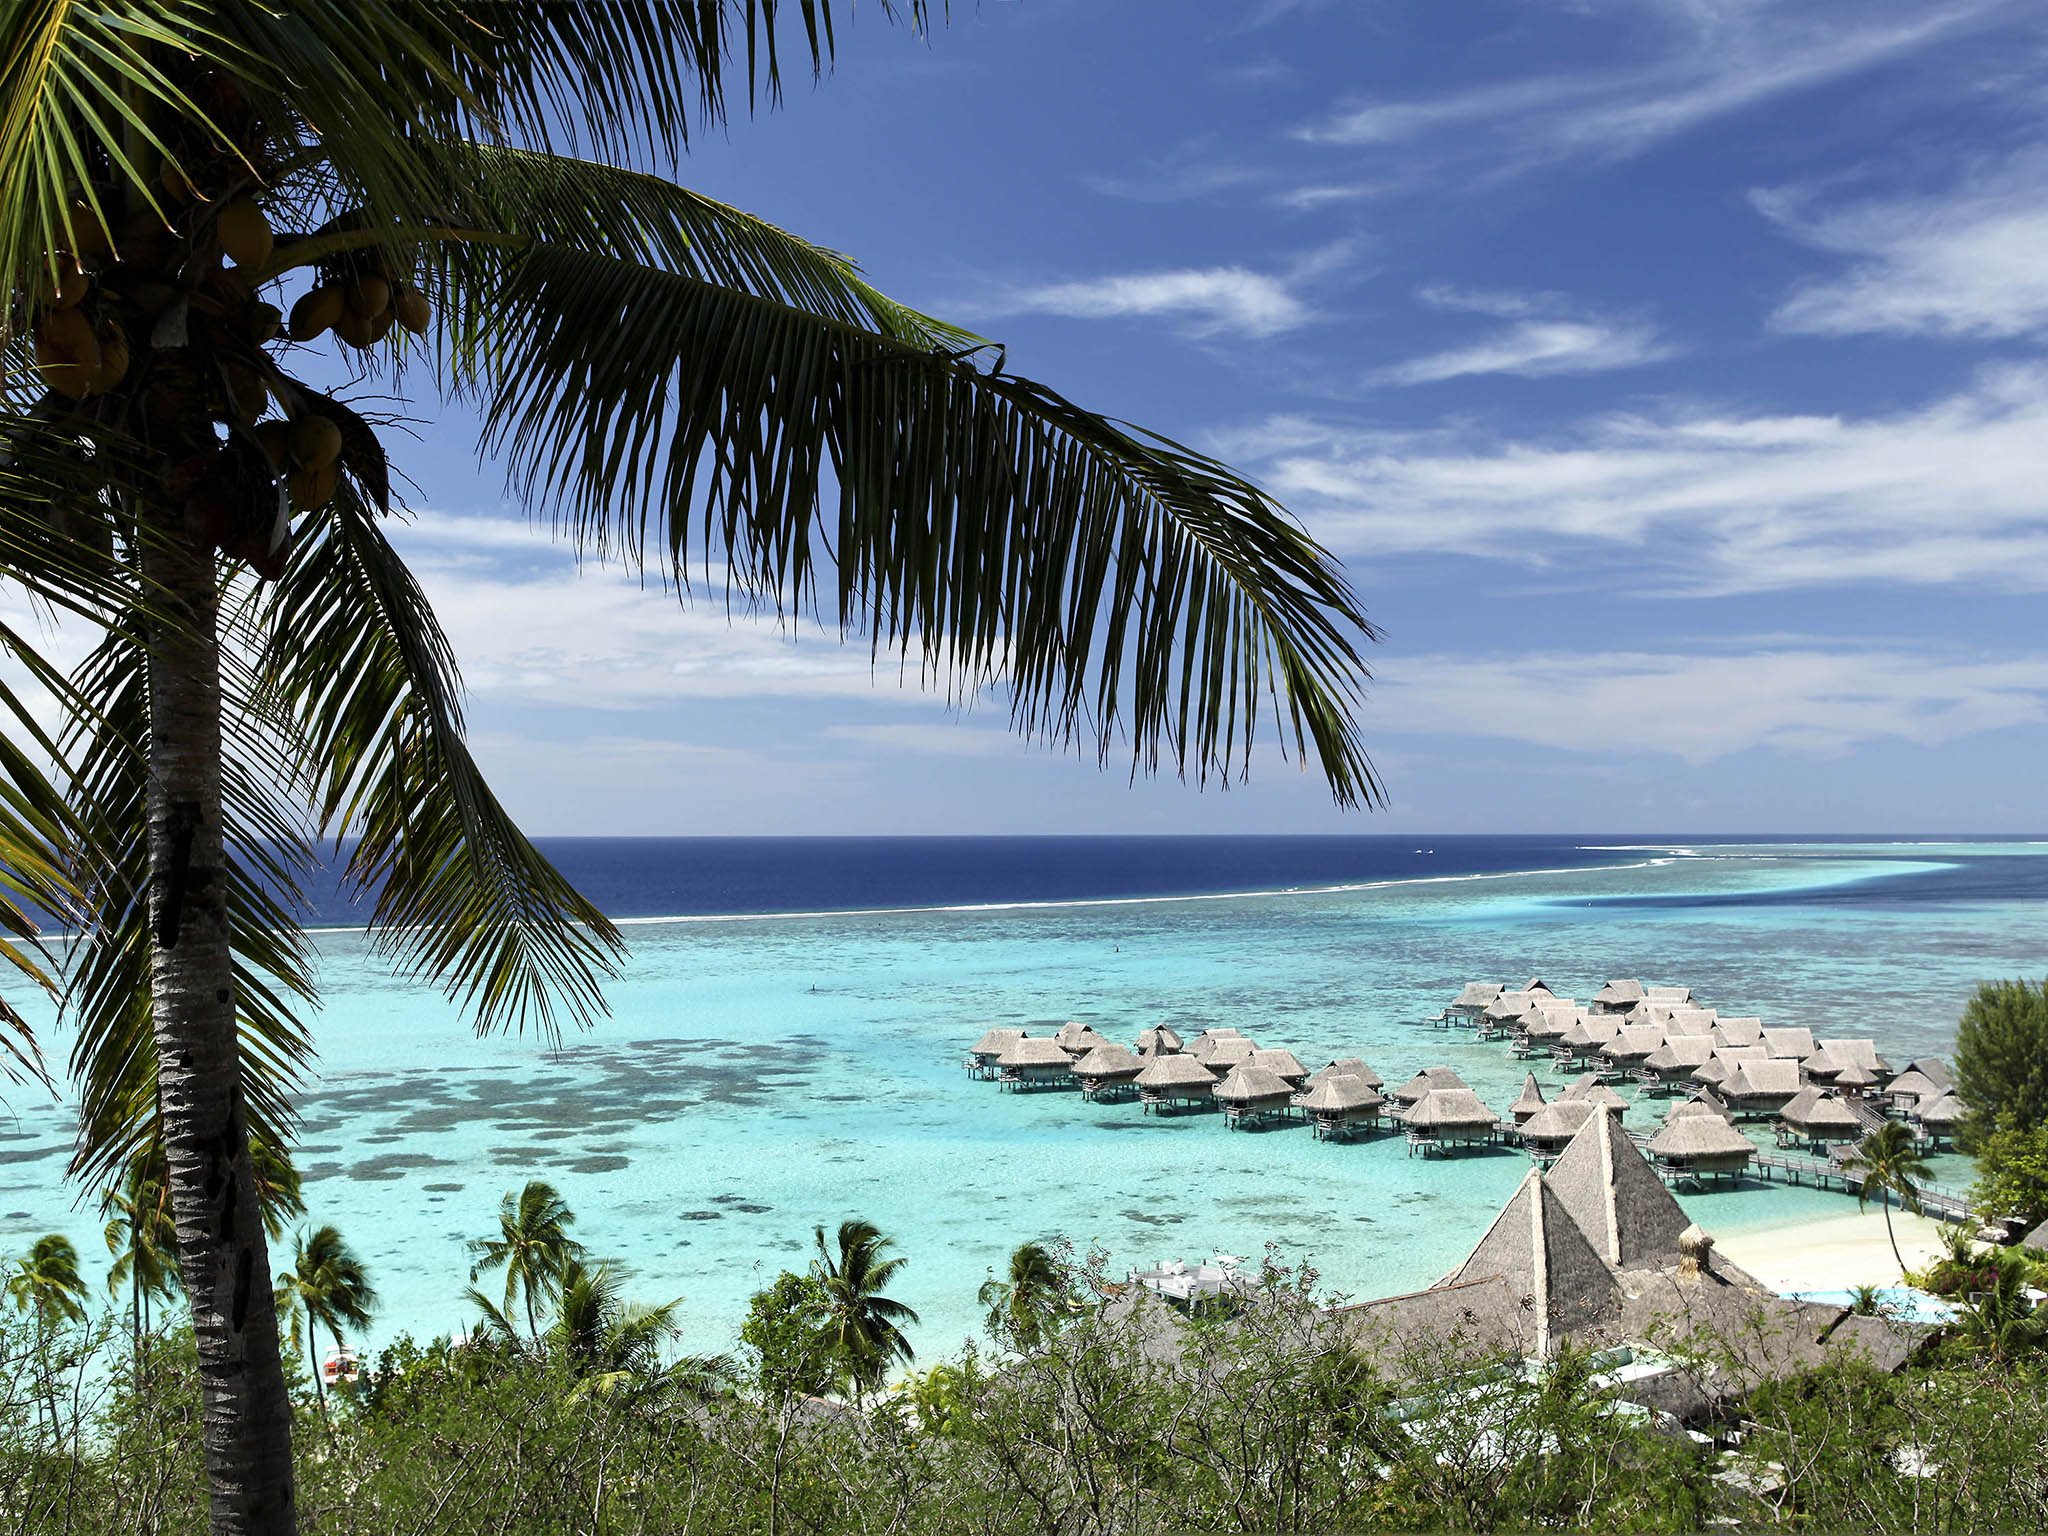 Sofitel Moorea La Ora Beach Resort Hotel 5 Star Accor